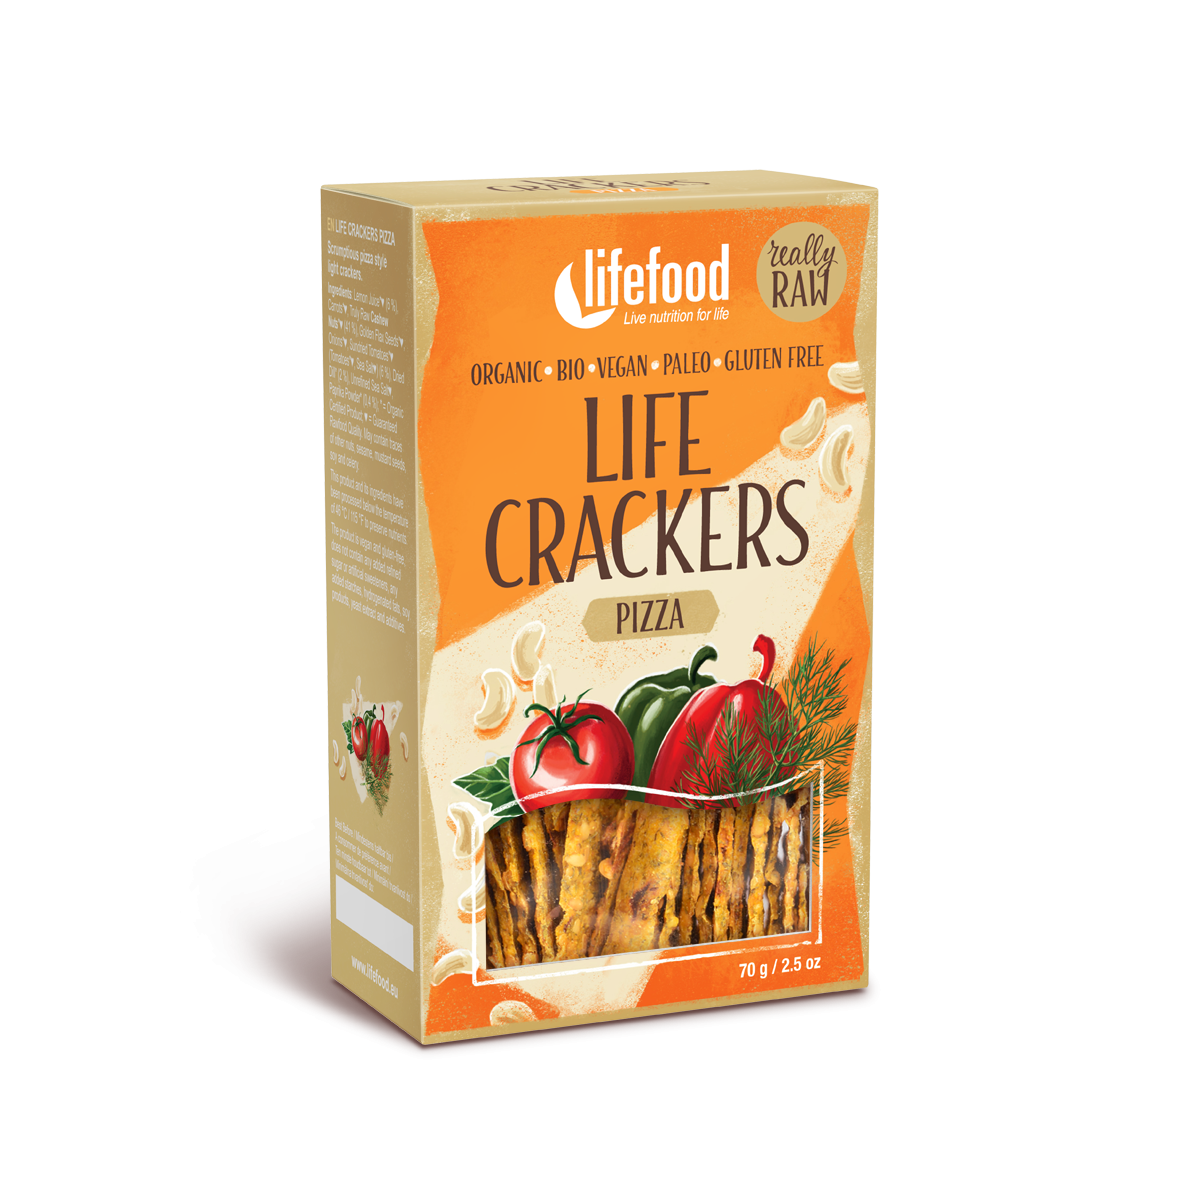 LIFE CRACKERS à la pizza BIO RAW 70 g LIFEFOOD